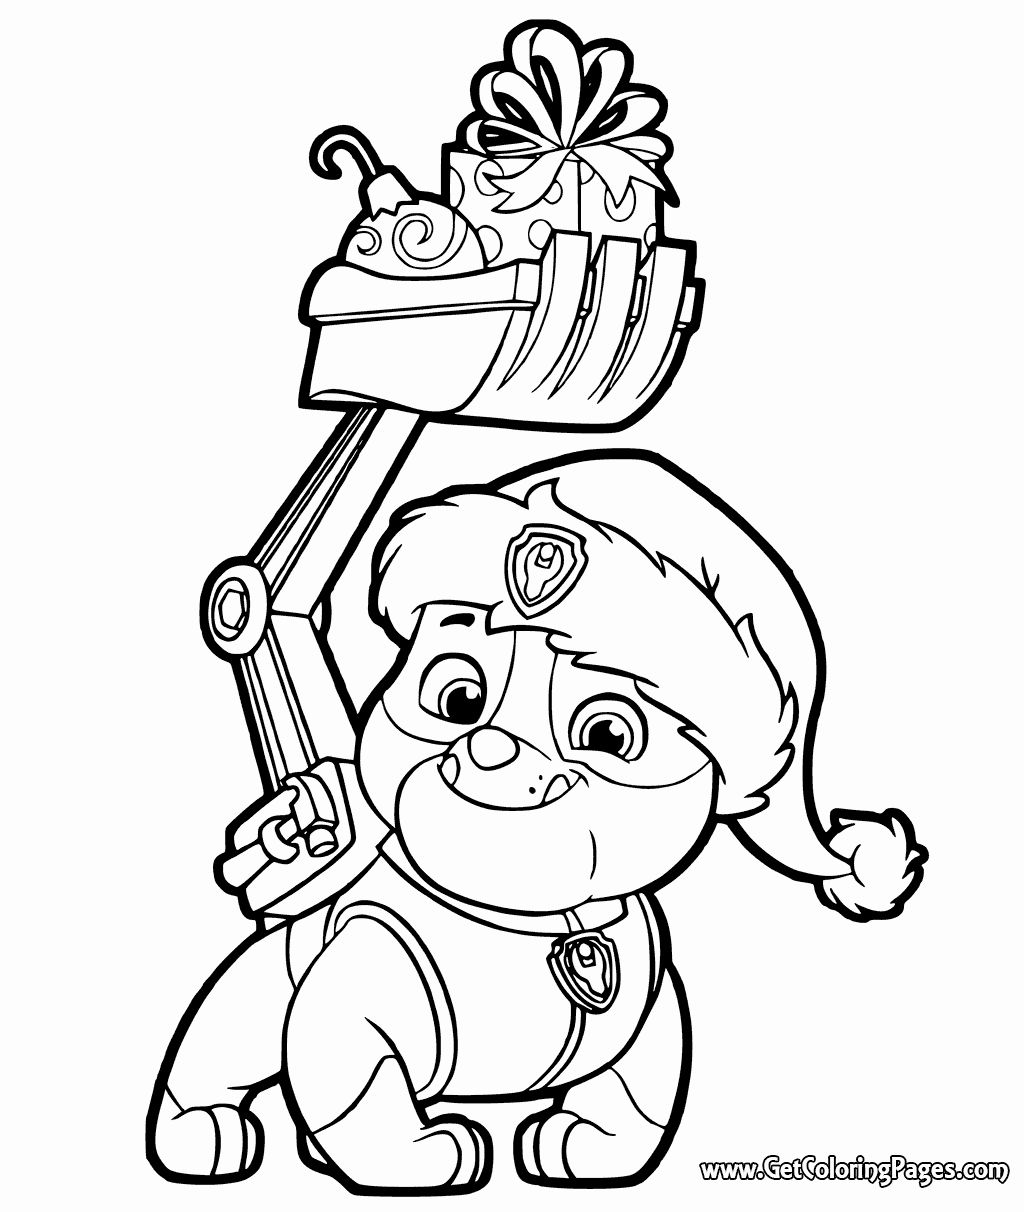 Nick Jr Coloring Book Awesome Paw Patrol Drawing Games At Getdrawings Paw Patrol Coloring Nick Jr Coloring Pages Paw Patrol Christmas